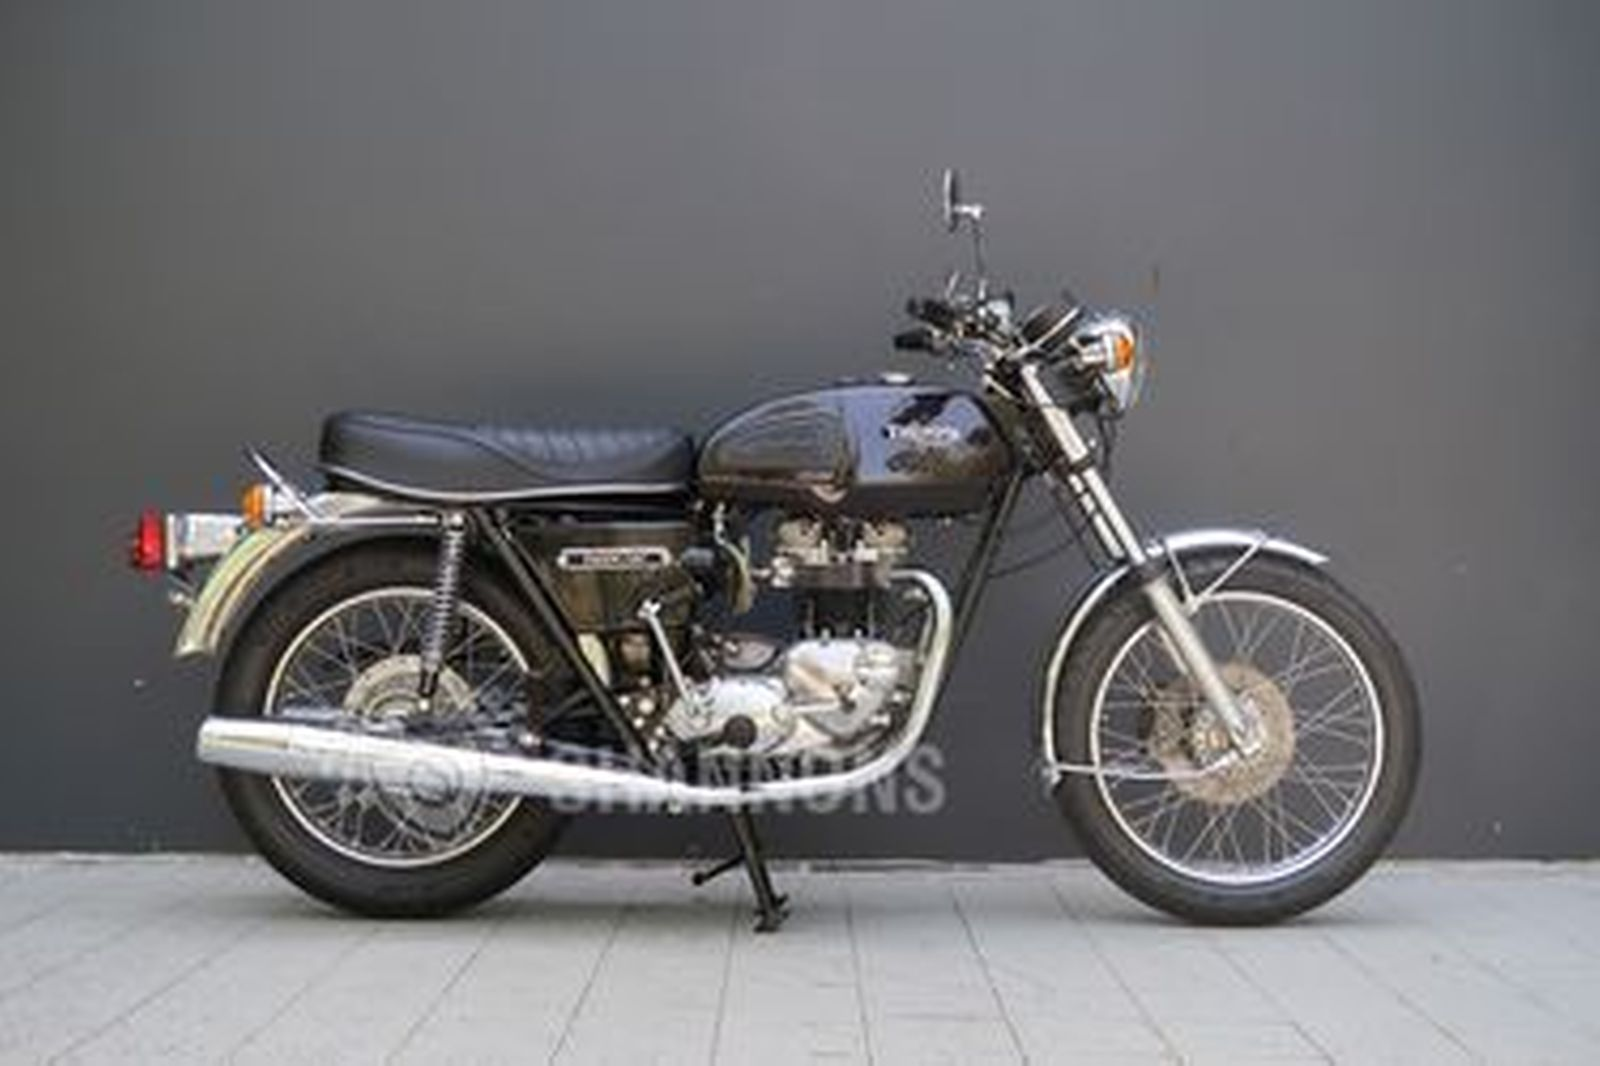 Triumph 750 Tiger TR7RV Motorcycle